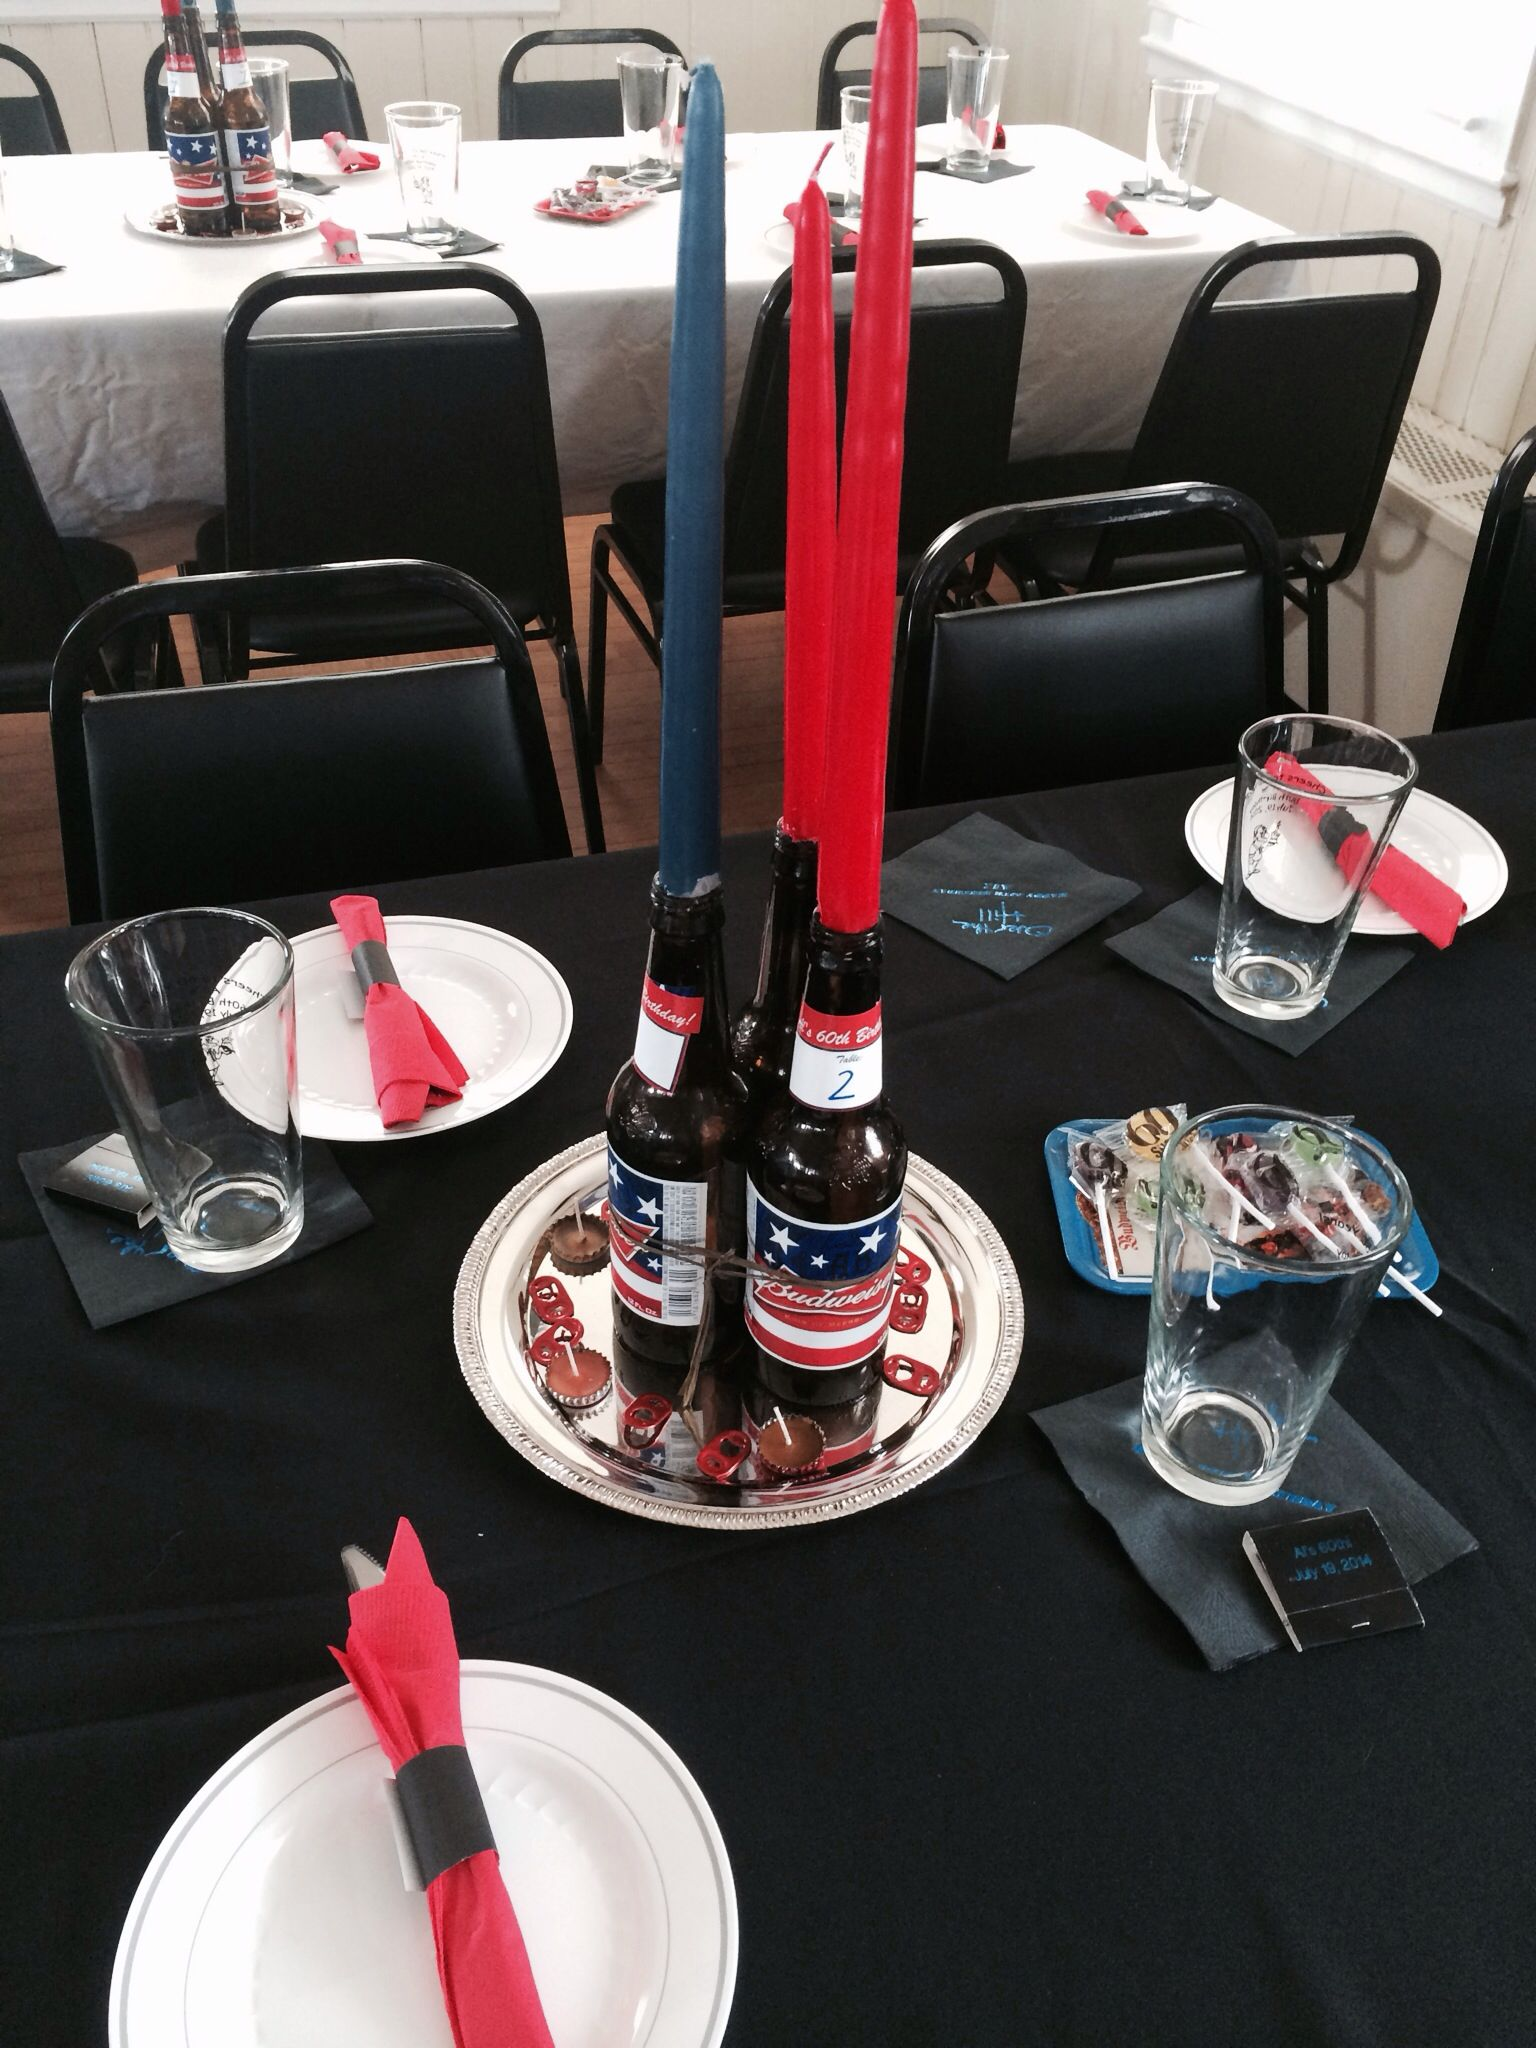 Budweiser Centerpiece Beer bottle centerpiece